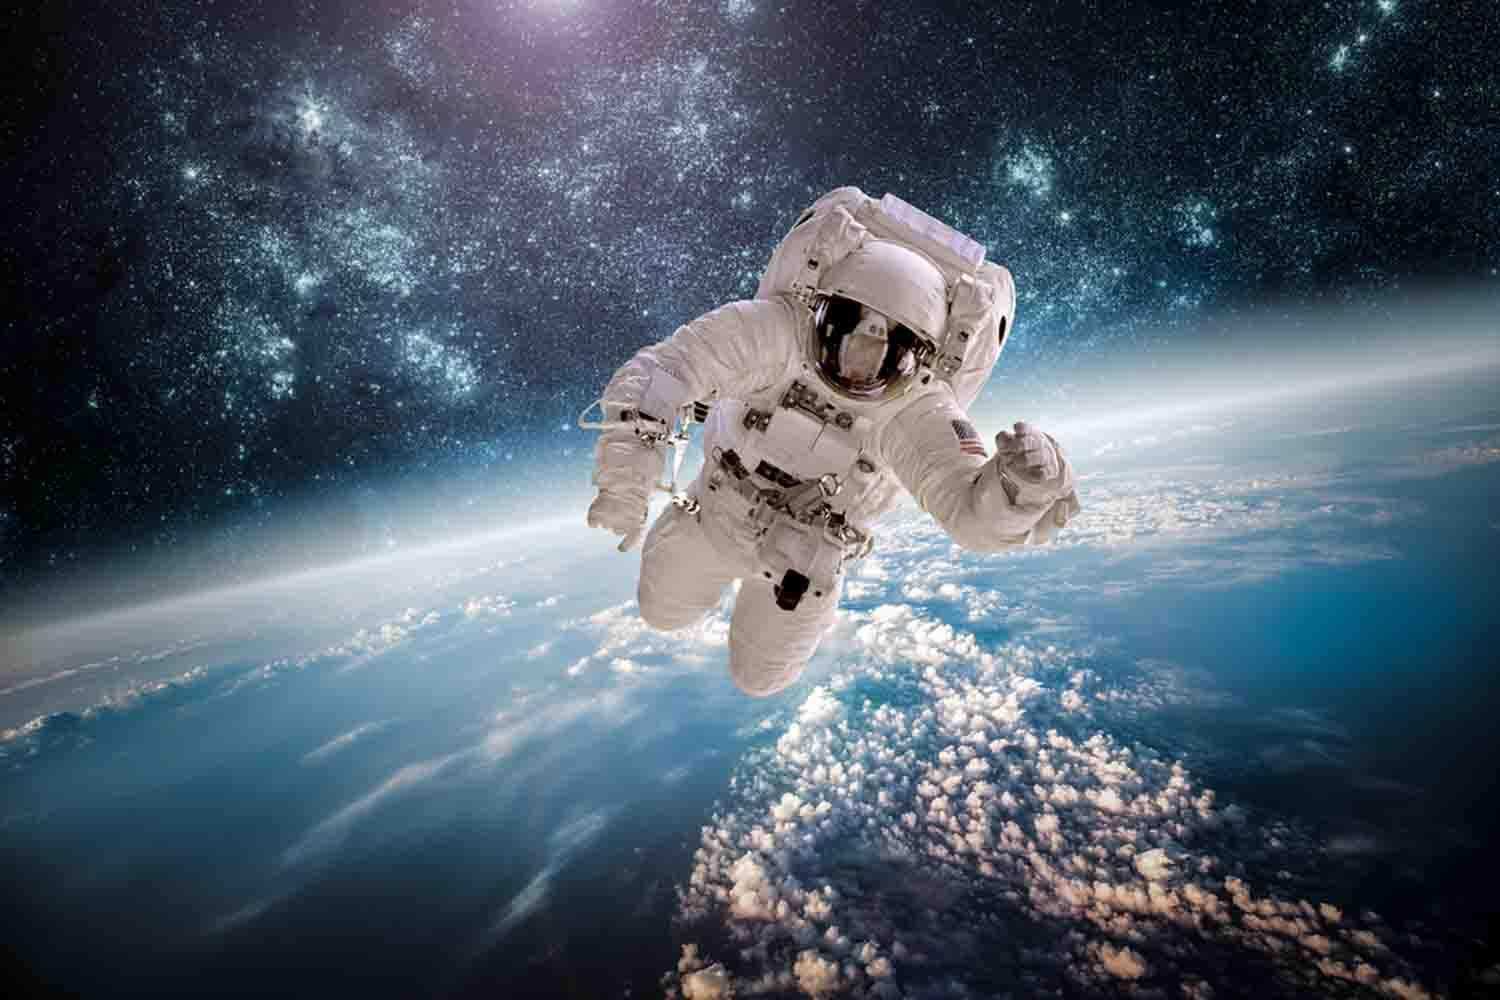 Space Wallpaper Hd For Android Apk Download